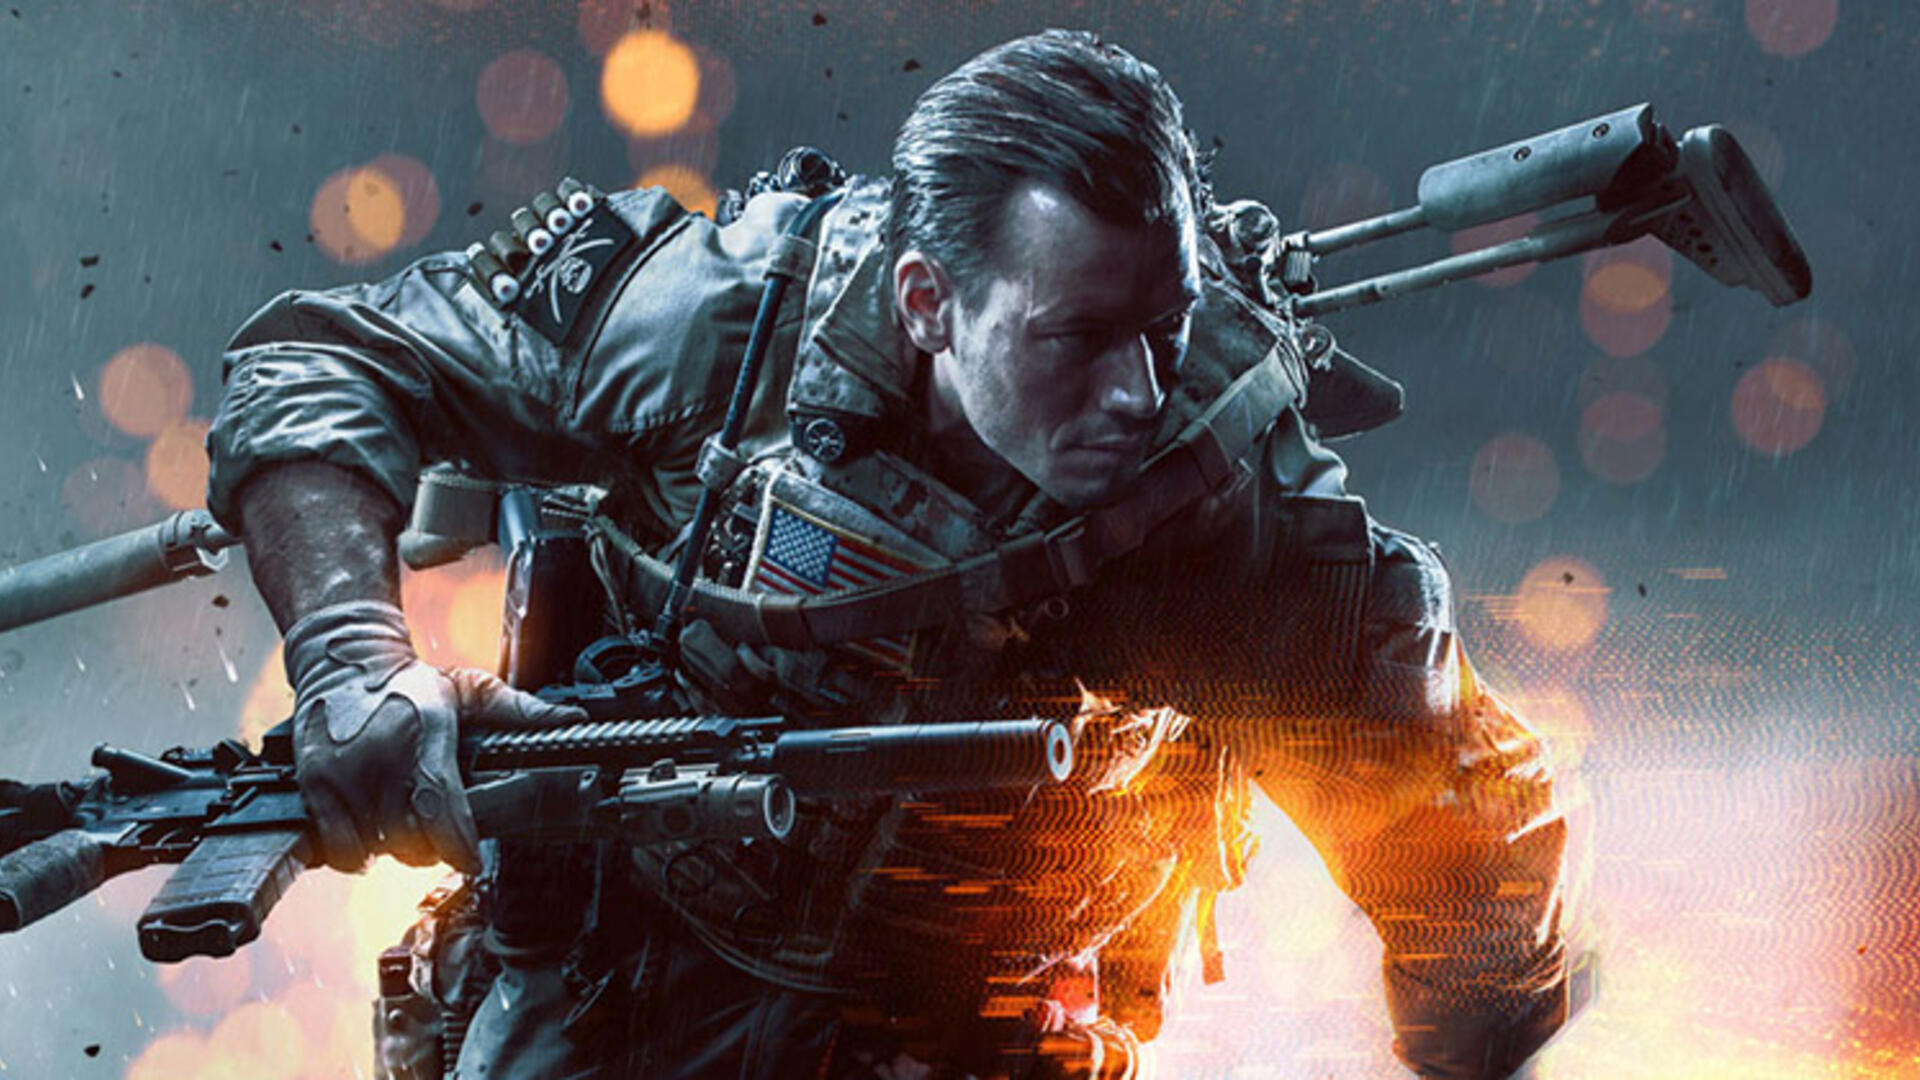 Battlefield 4 DLC Released Despite Main Game's Woes